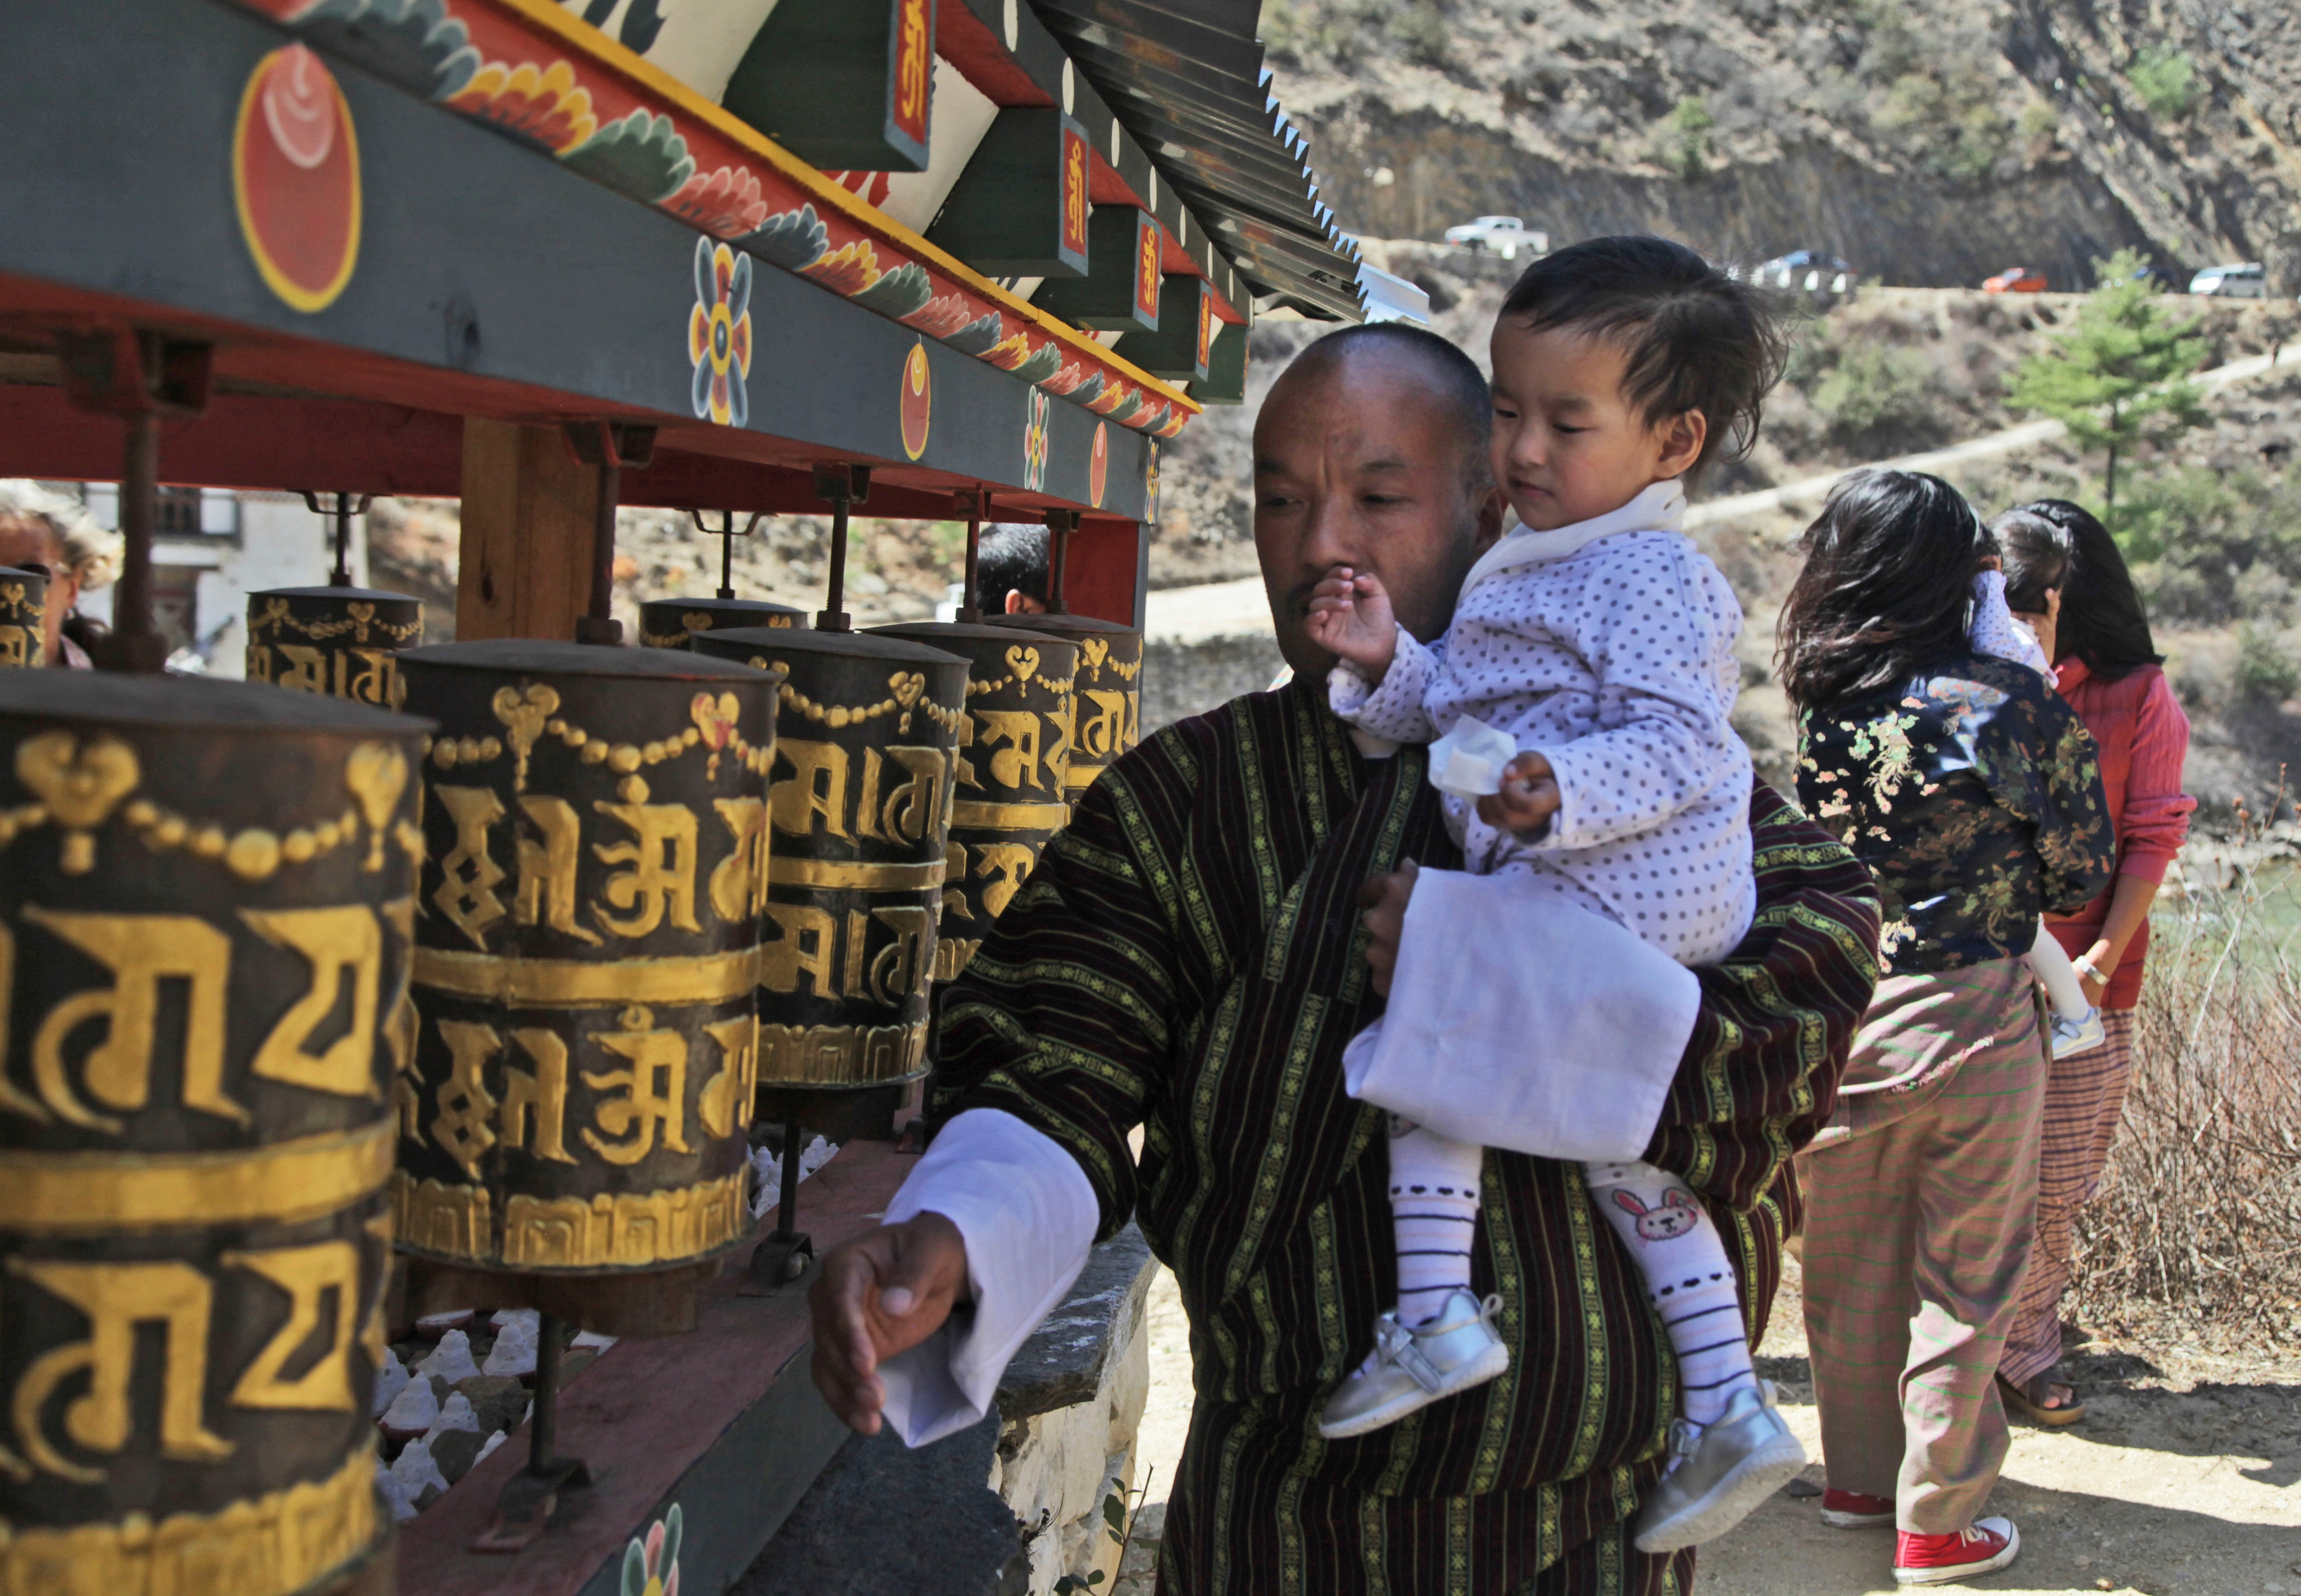 Sonam Tshering holds one of his conjoined twin daughters and spins prayer wheels at the Tachog Lhakhang Buddhist temple.